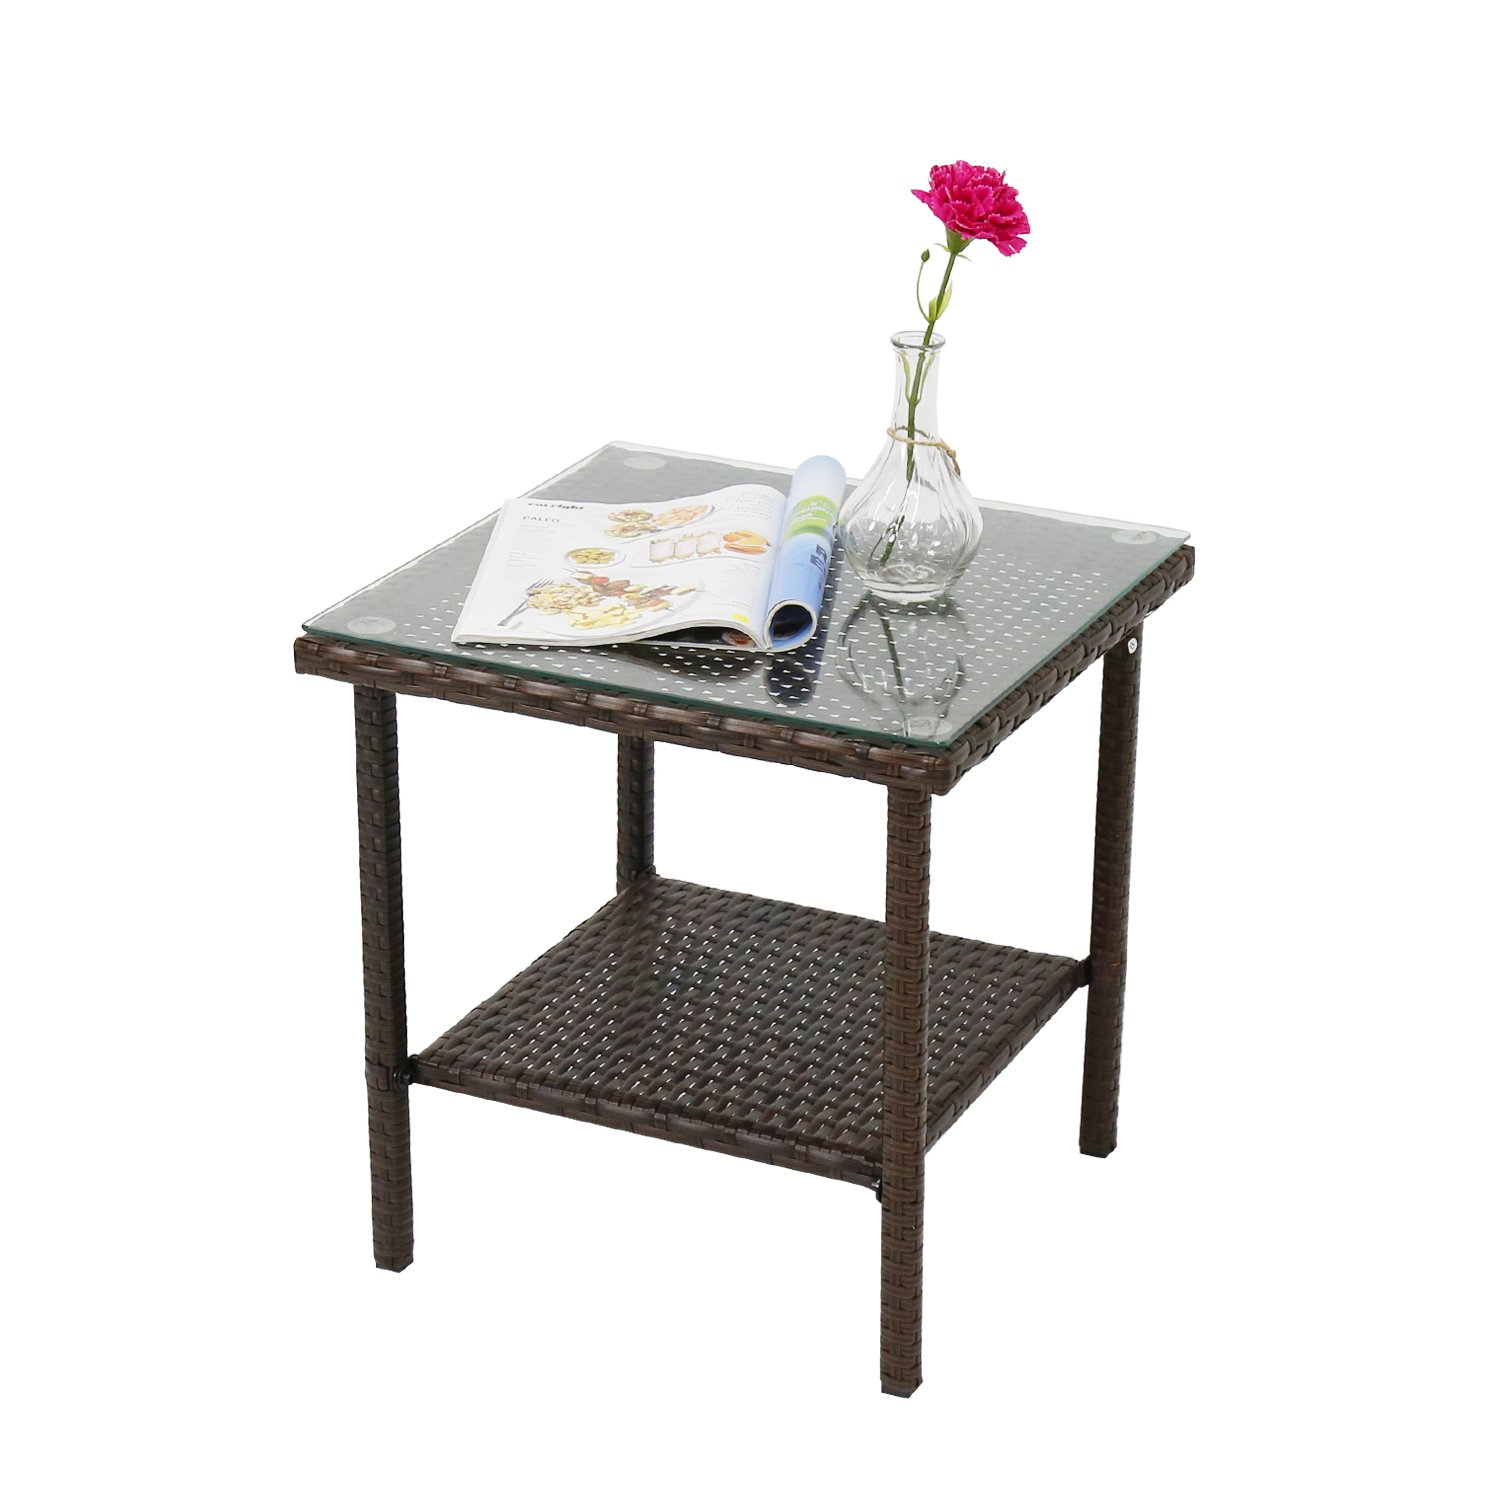 Peach Tree 17-Inch Indoor Outdoor Square Patio Rattan Wicker Side Tea Table w/Glass, Brown